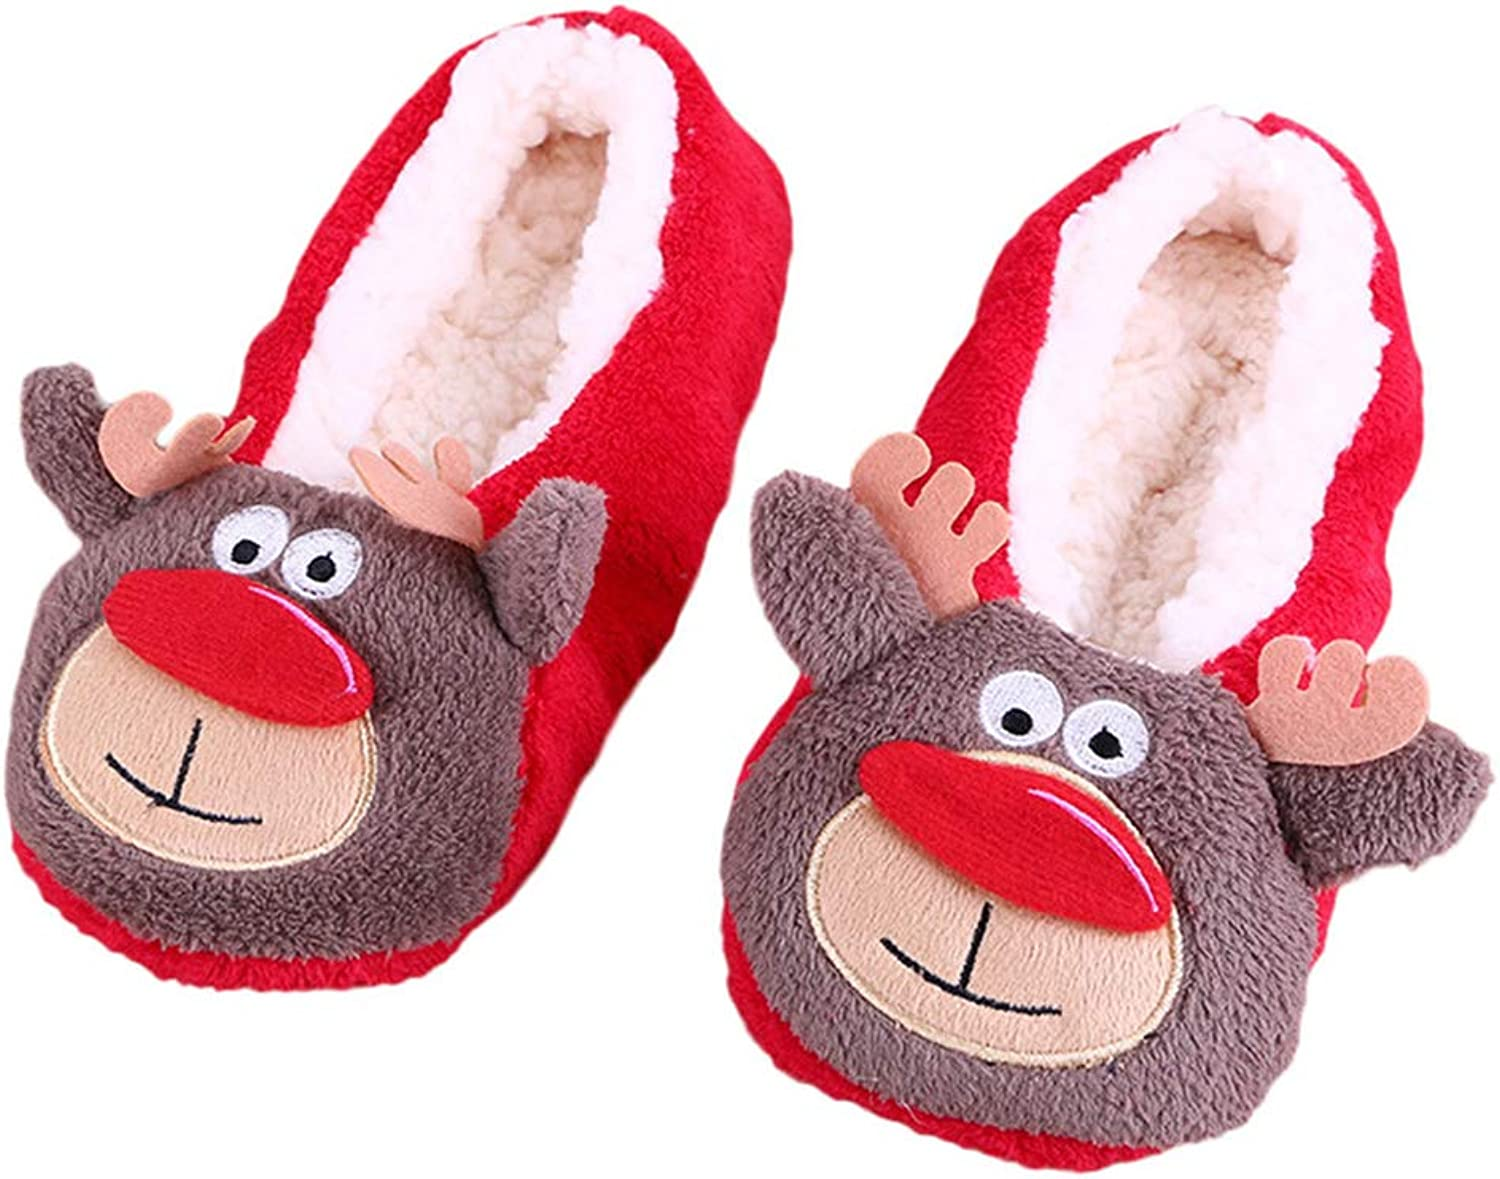 Winter Women Home Slippers Socks Cartoon Ladies Warm Indoor Soft Plush Christmas Non-Slip Bedroom shoes